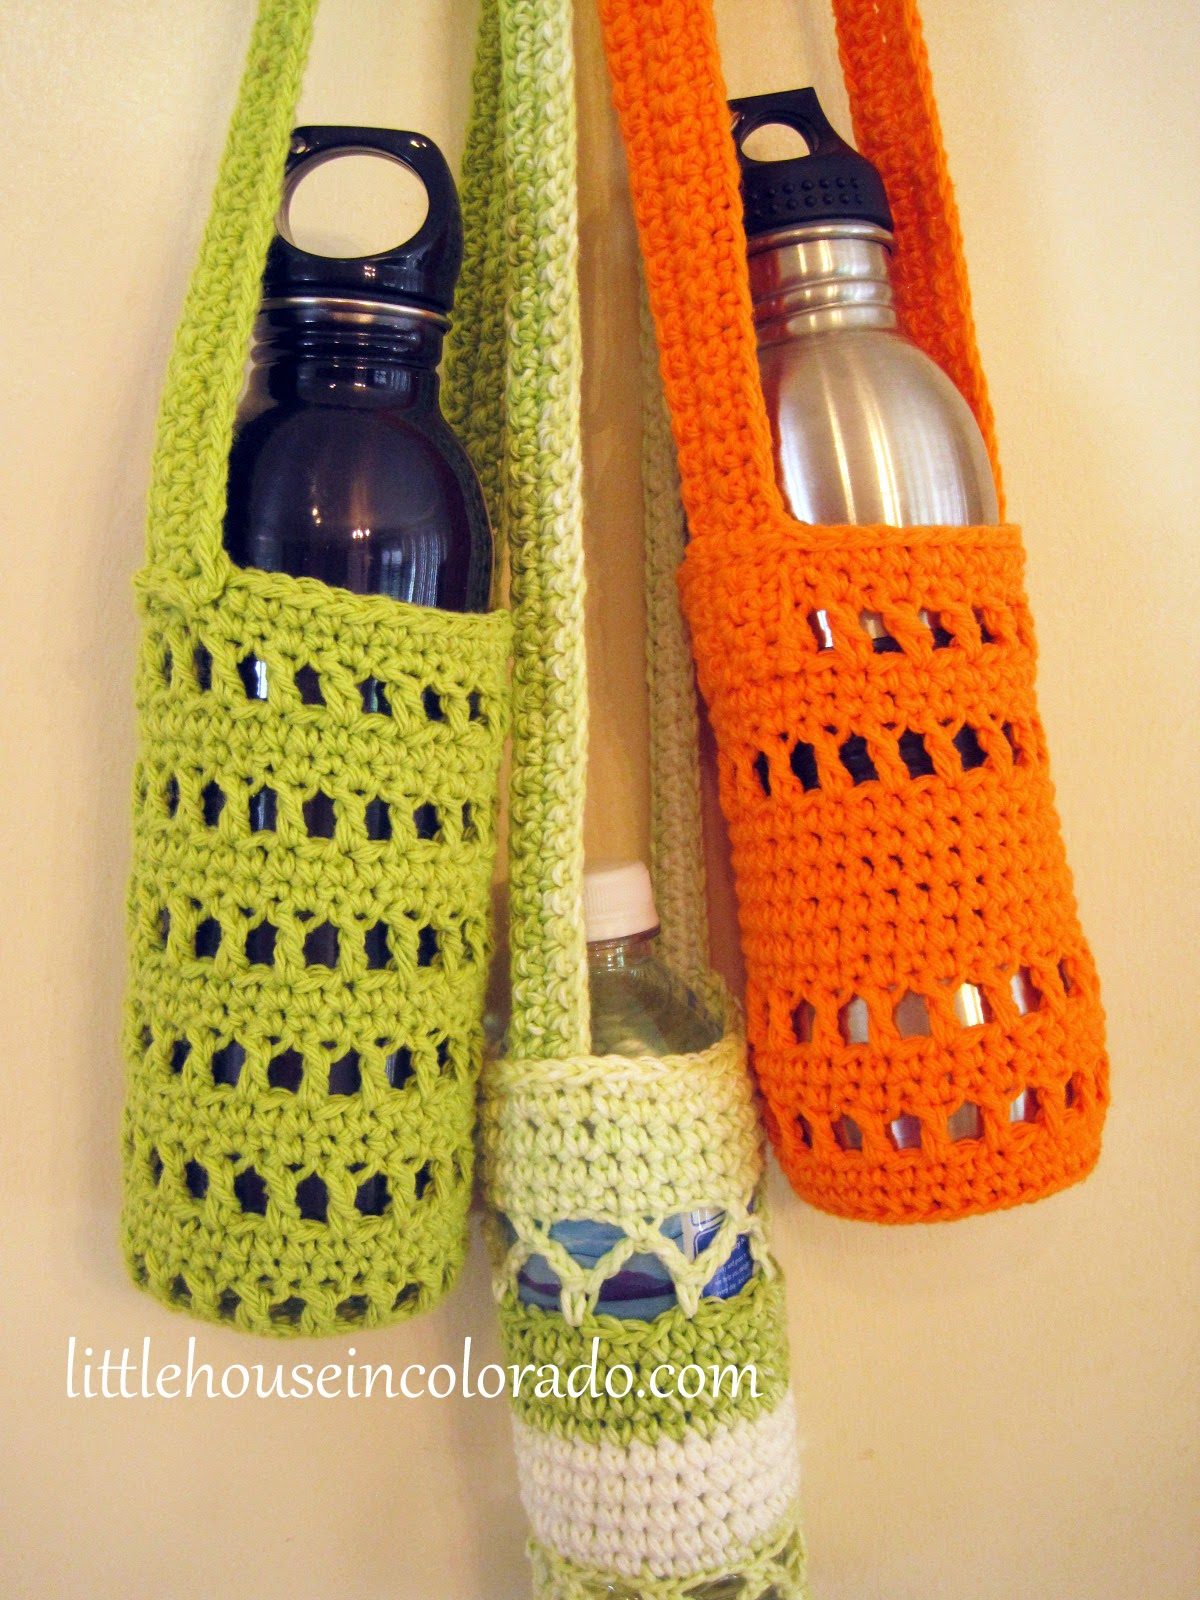 Little House In Colorado: Pattern For Crochet Water Bottle Holders